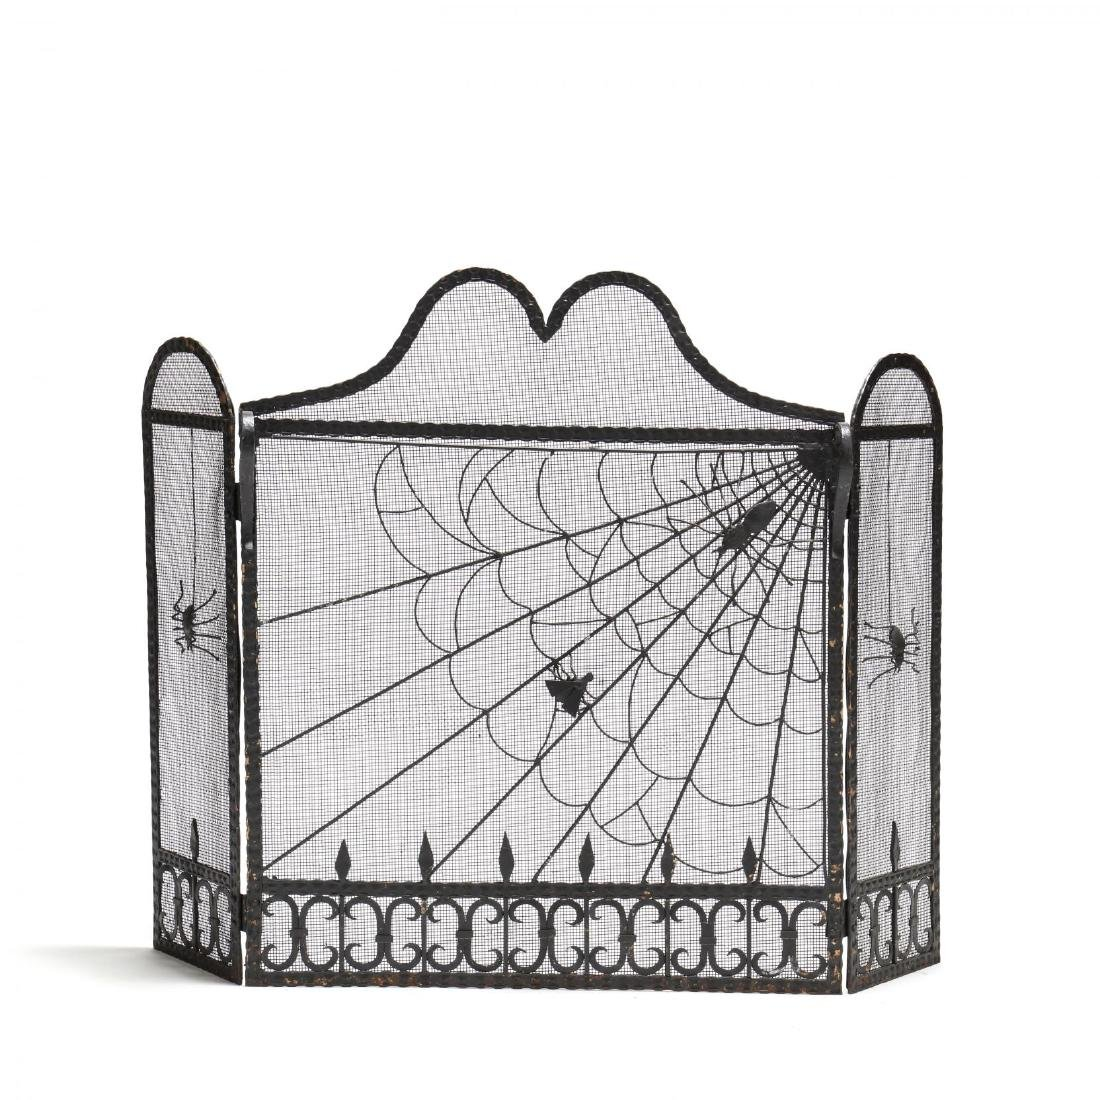 Whimsical Wrought Iron Fire Screen with Spider's Web